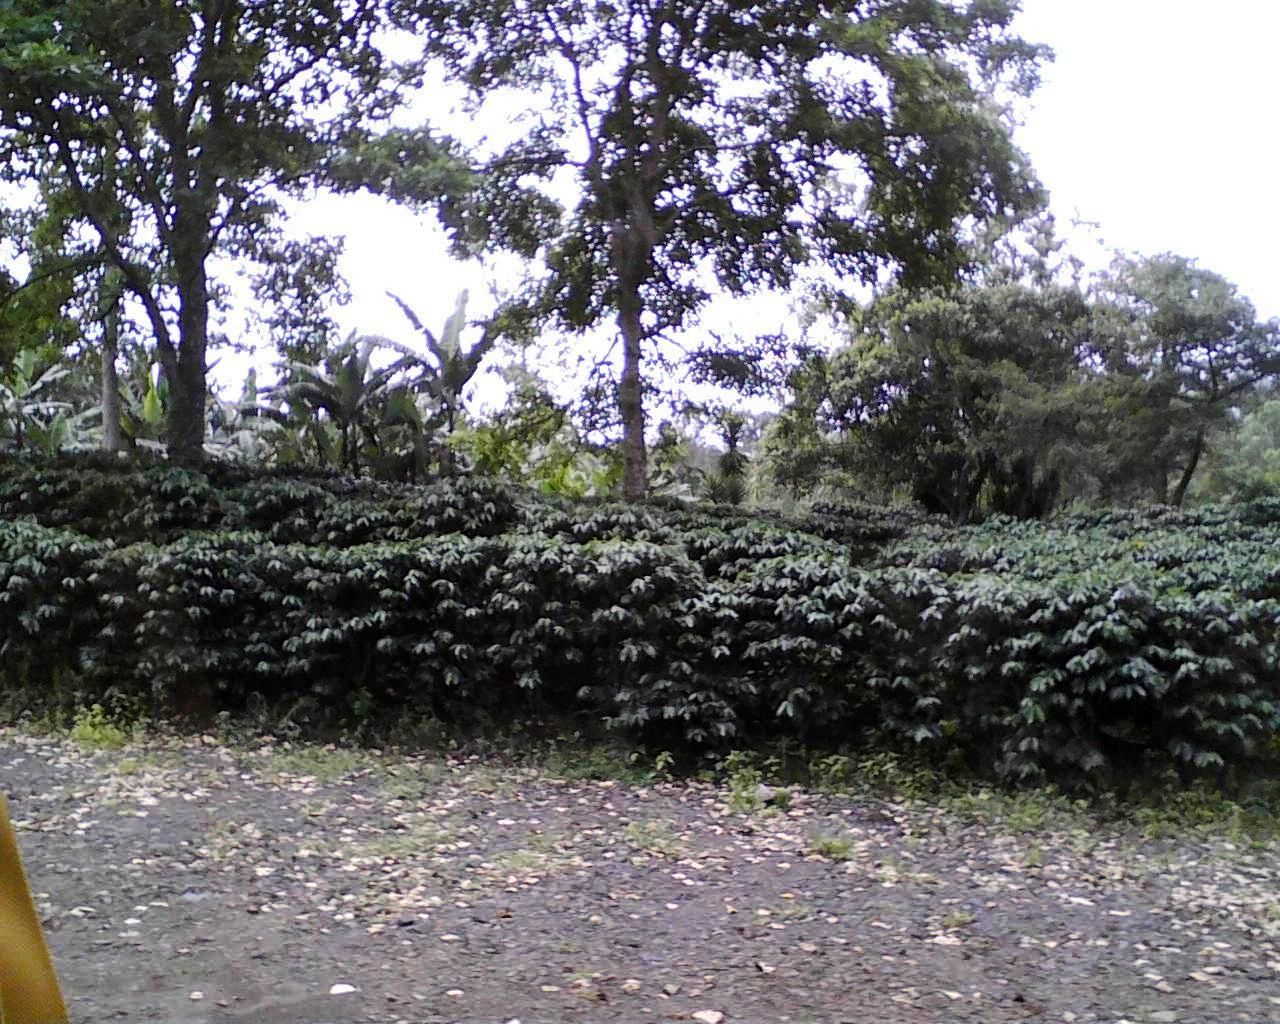 Glynna took a picture of the coffee plants at the plantation in Costa Rica.